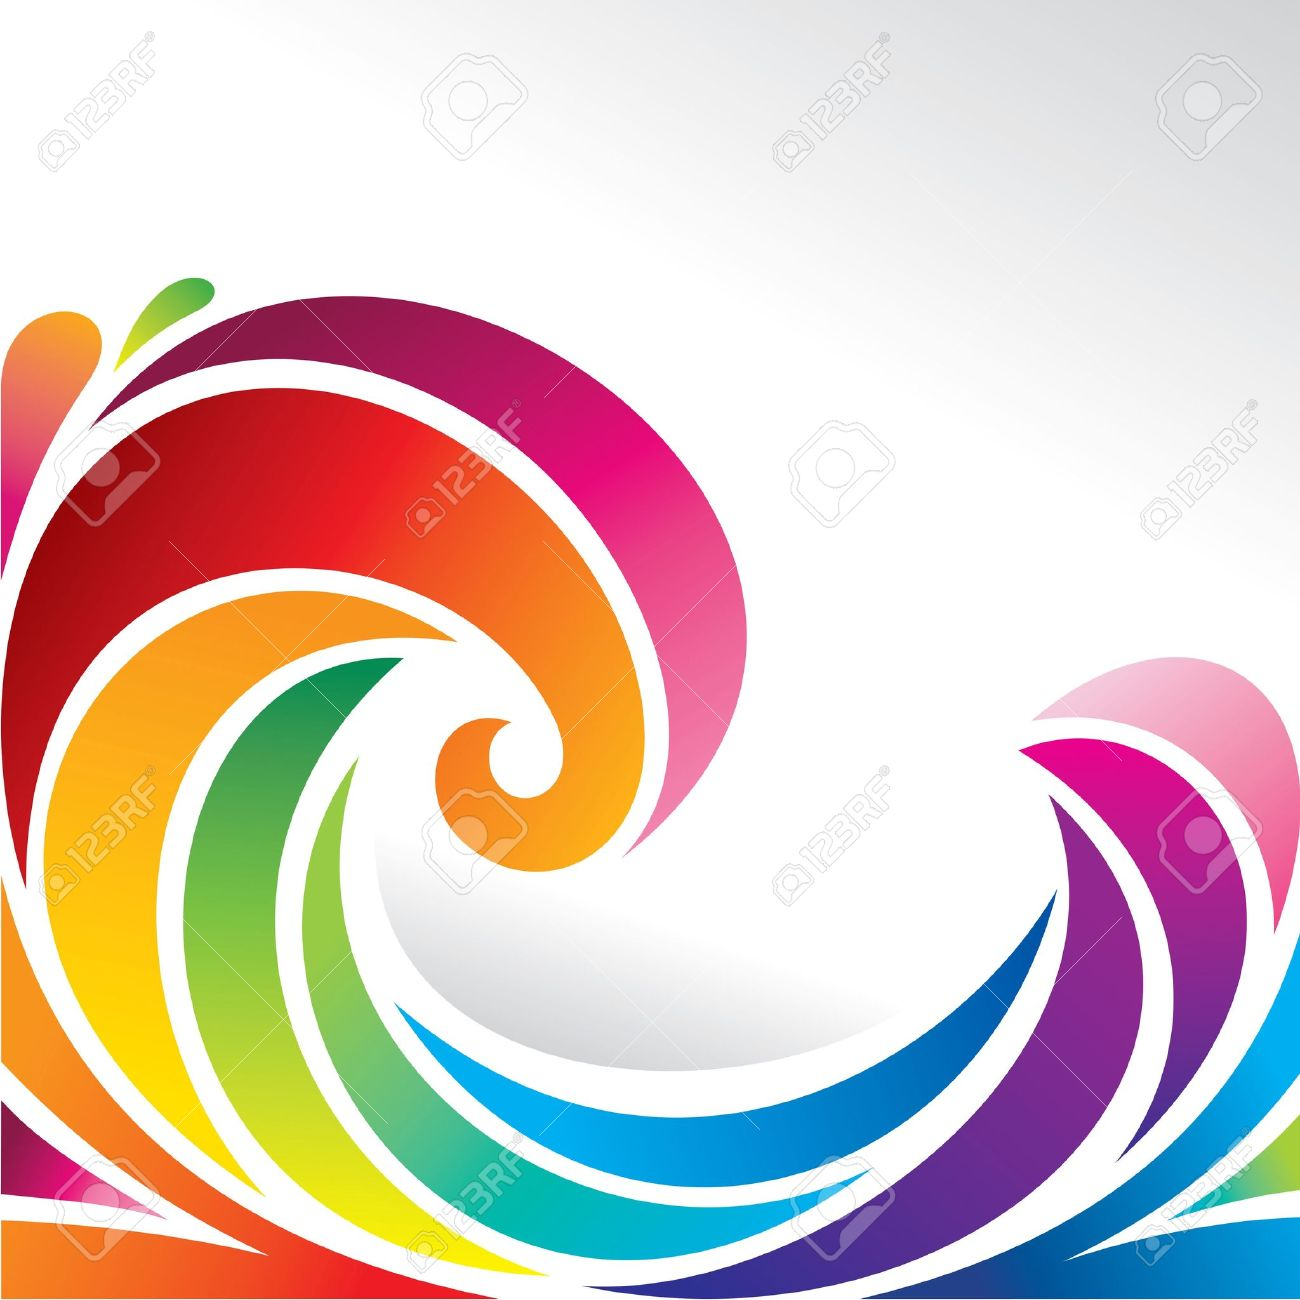 Image result for Rainbow wave